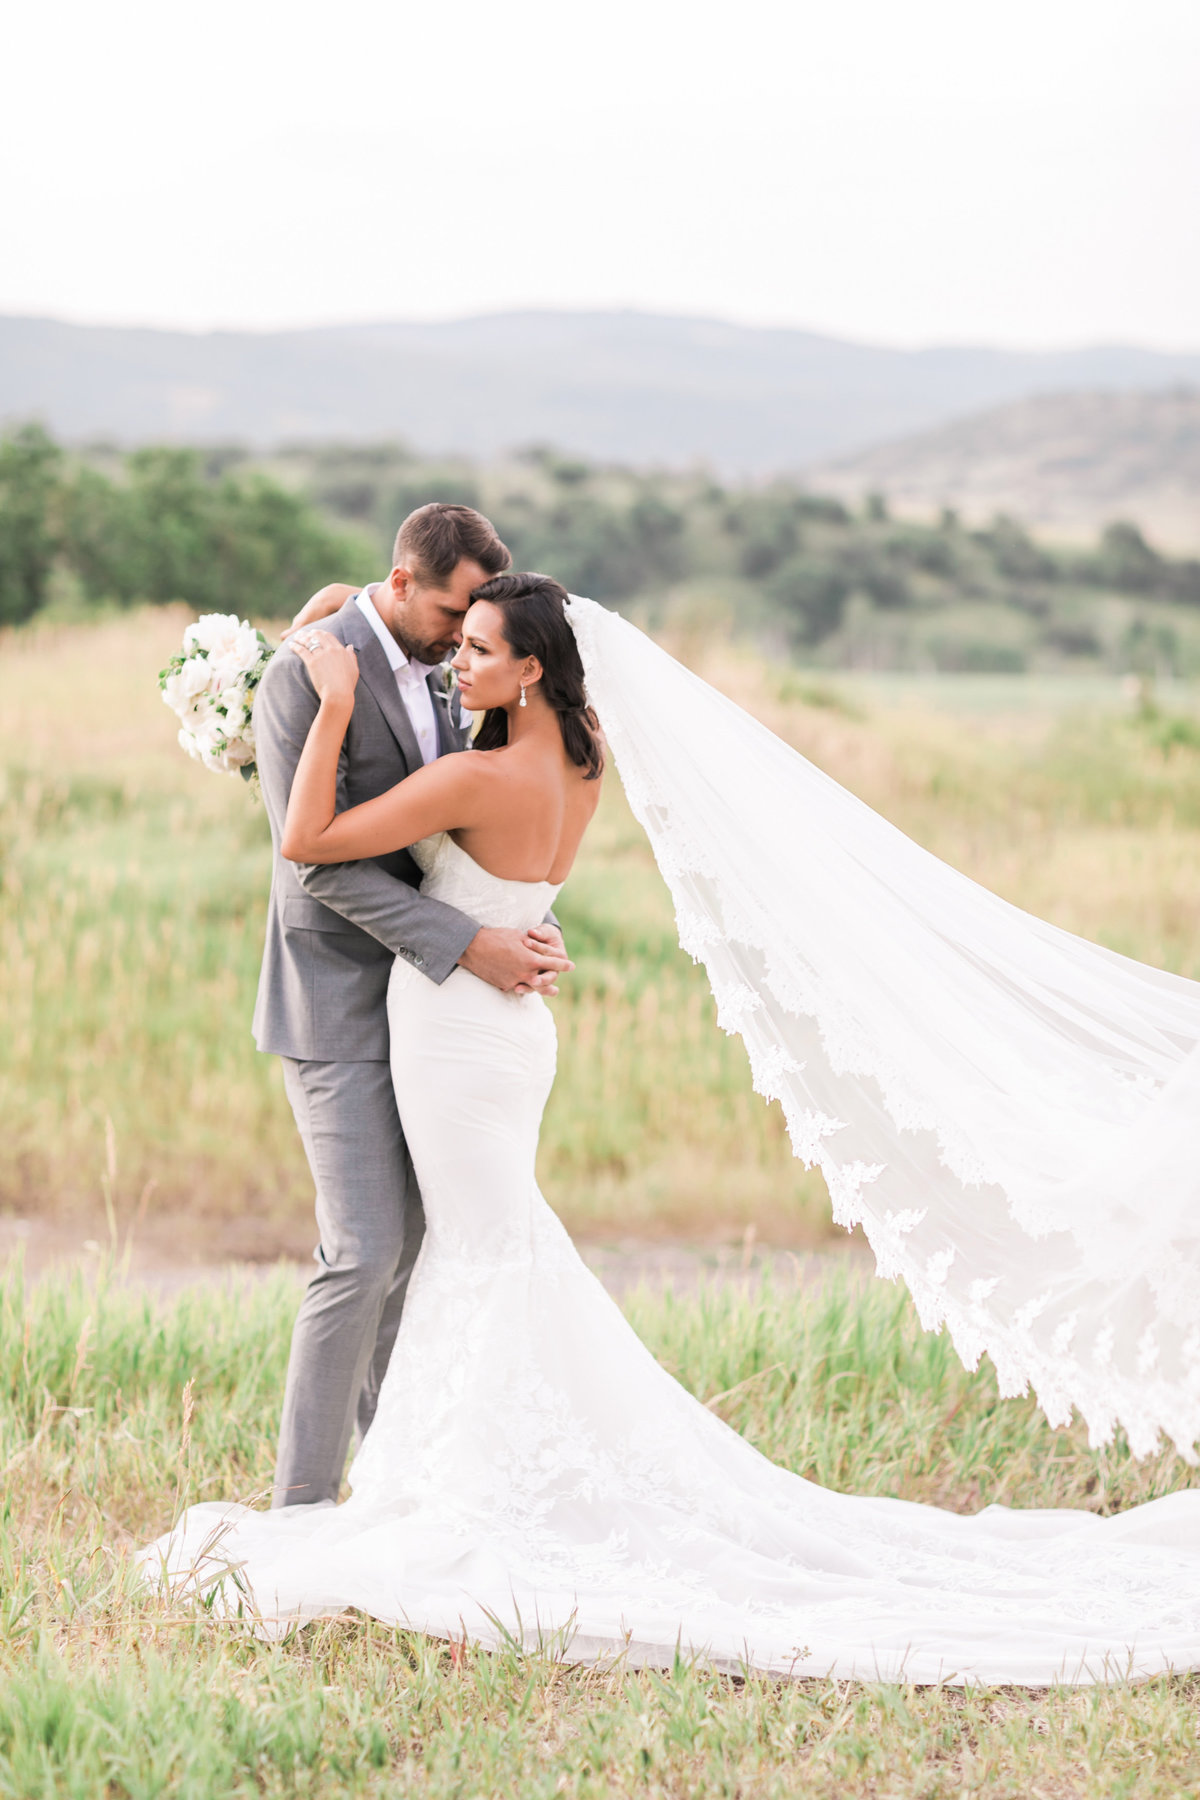 Kari_Ryan_Anderson_Colorado_Outdoor_Chapel_Wedding_Valorie_Darling_Photography - 87 of 126